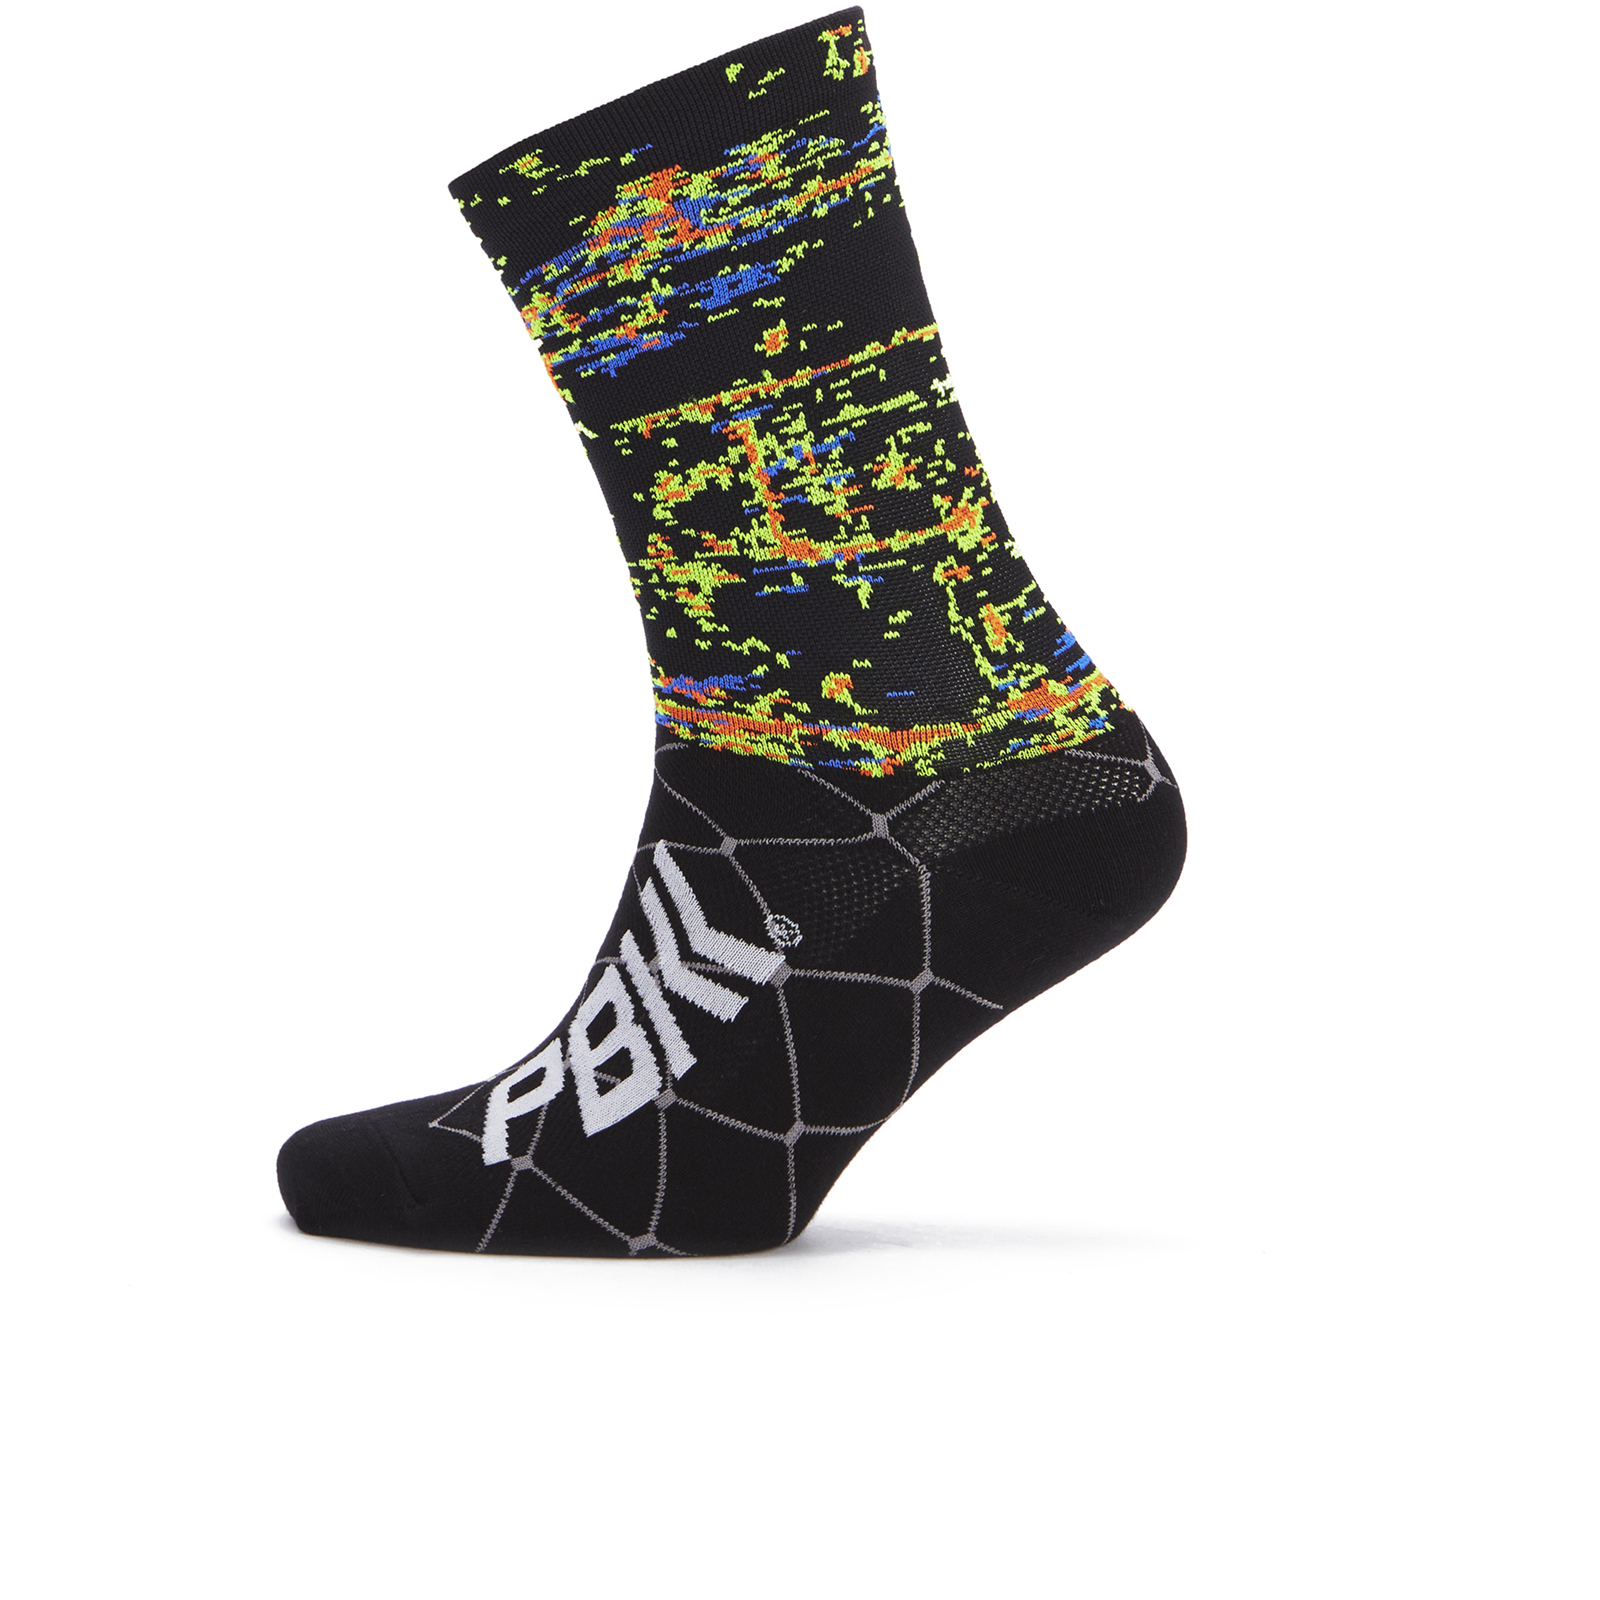 PBK Race High Cuff Socks - Pollock